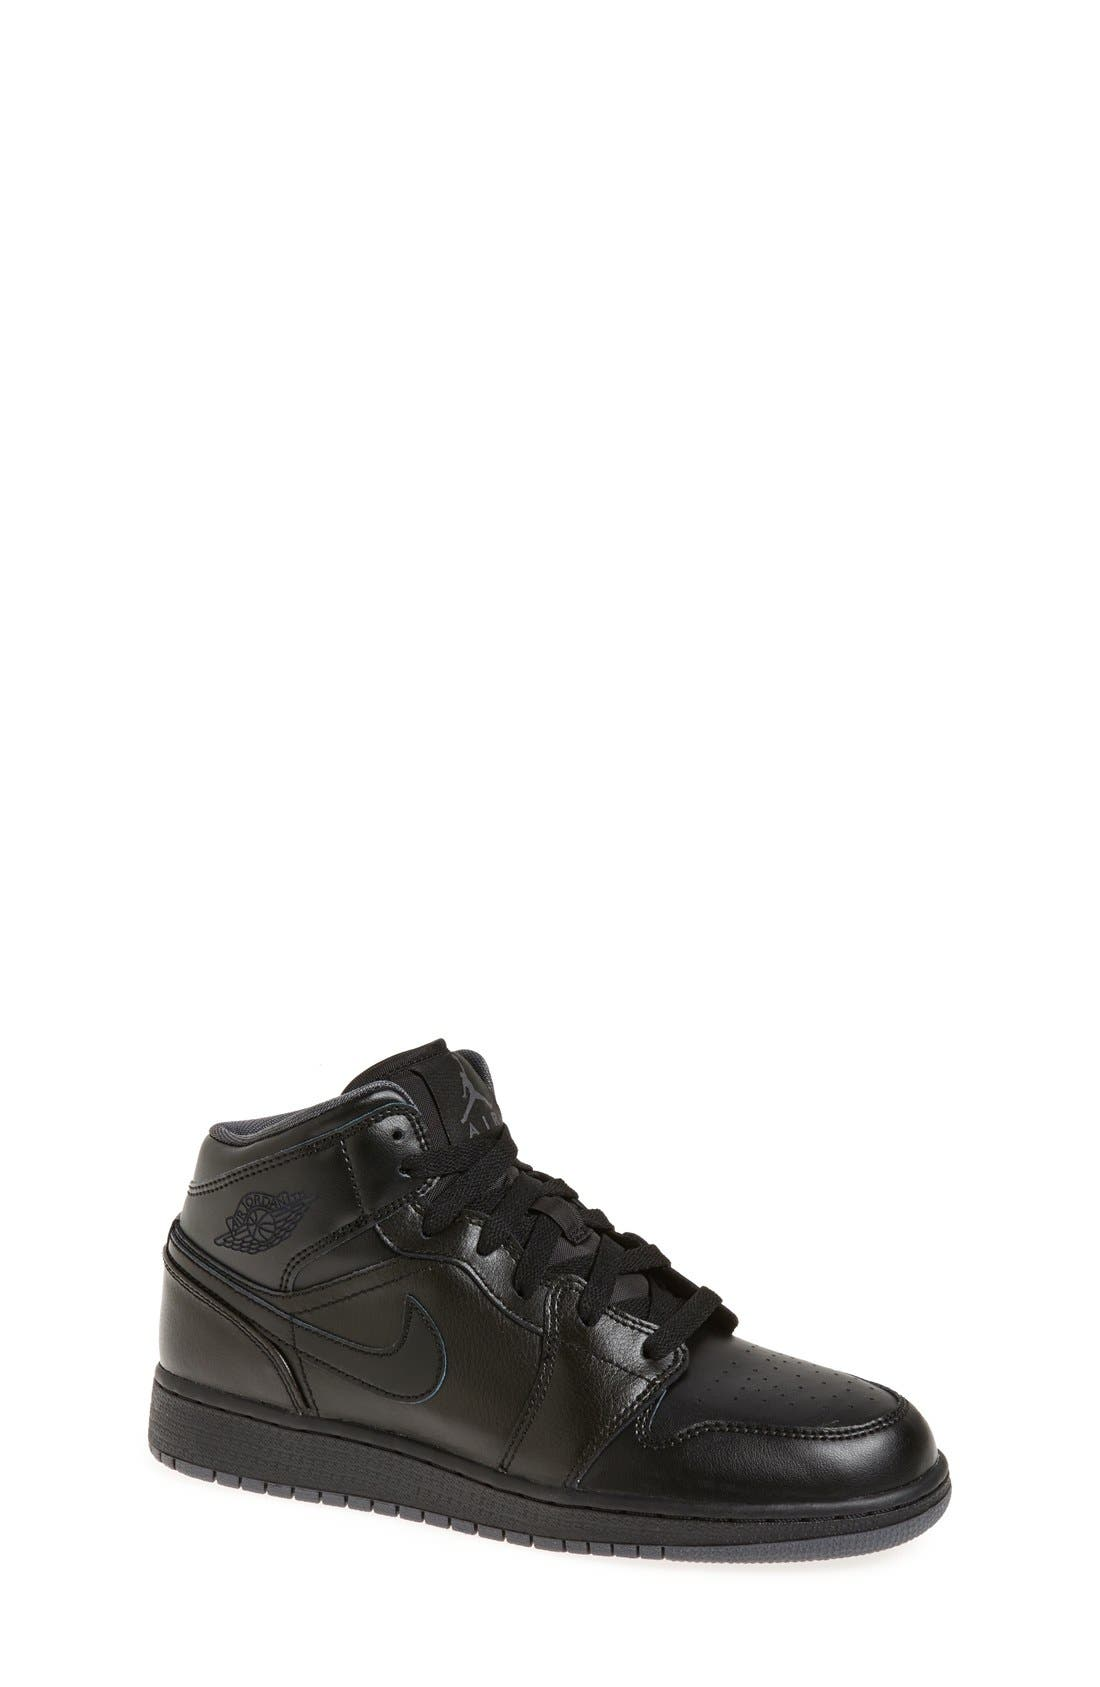 Nike 'Air Jordan 1 Mid' Sneaker,                         Main,                         color, Black/ Black